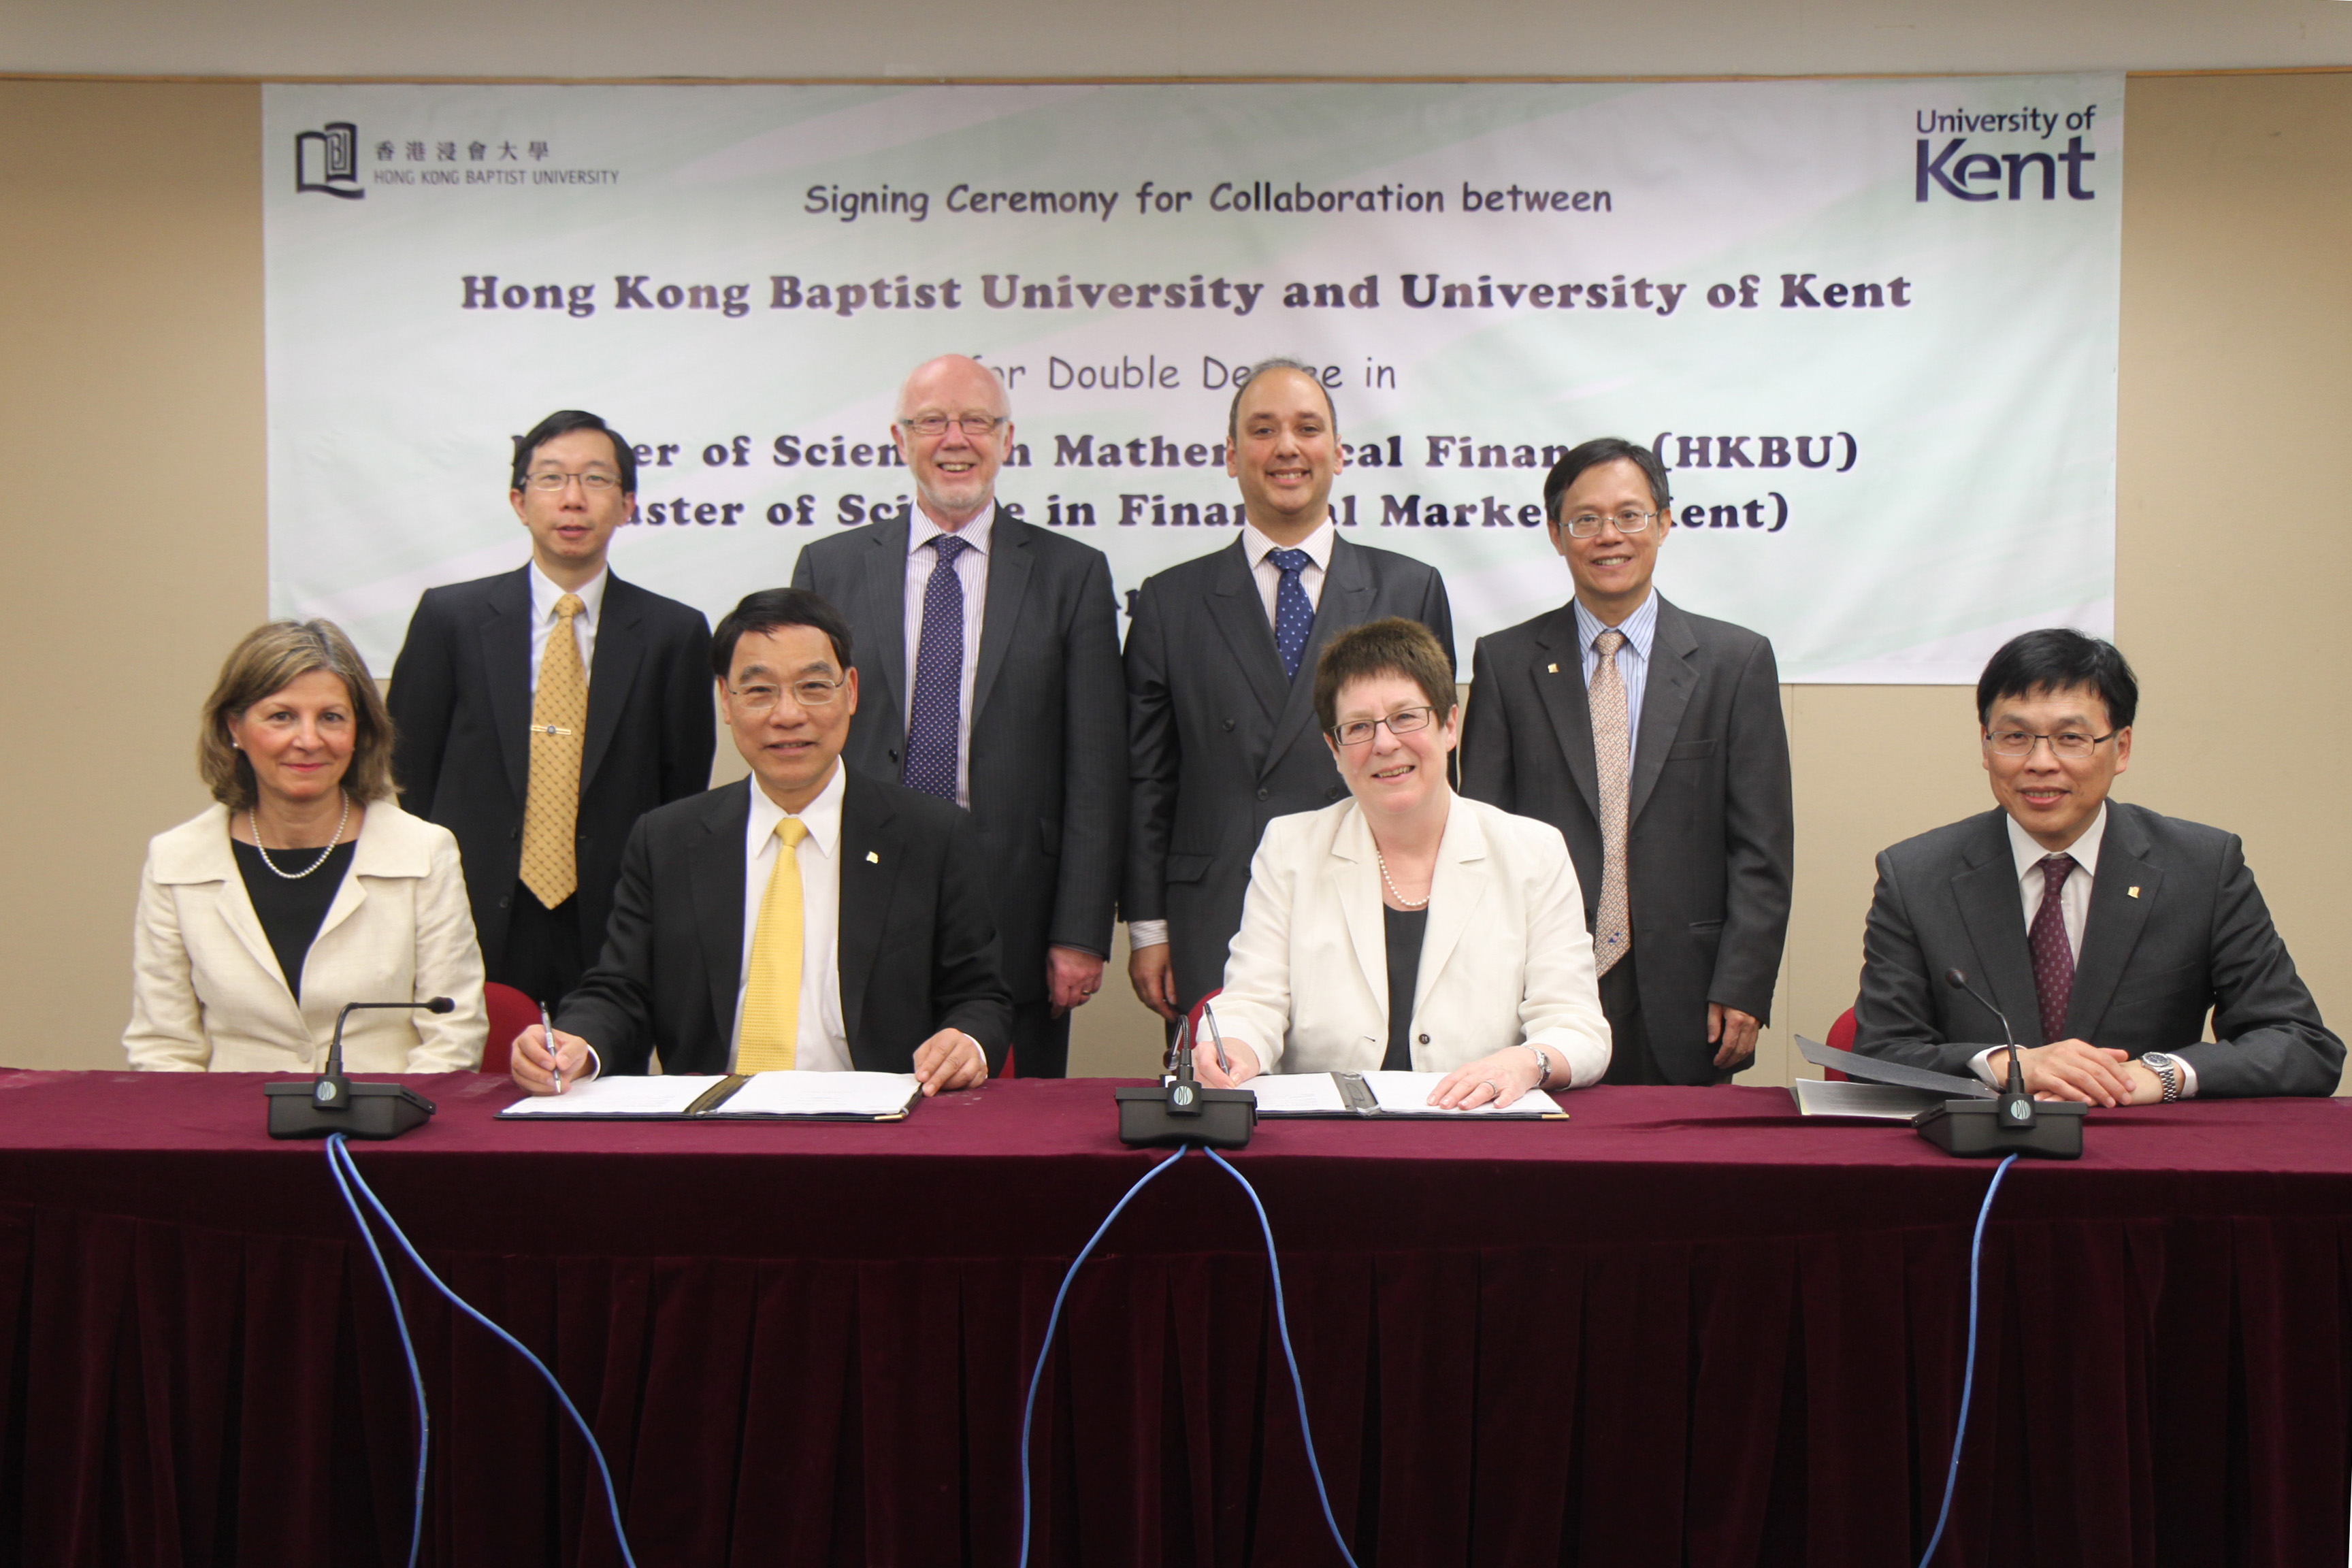 double master degree msc in mathematics finance by hkbu and msc signing ceremony 26 4 2013 by professor albert chan the president and vice chancellor of hkbu the first row second from the left and professor julia